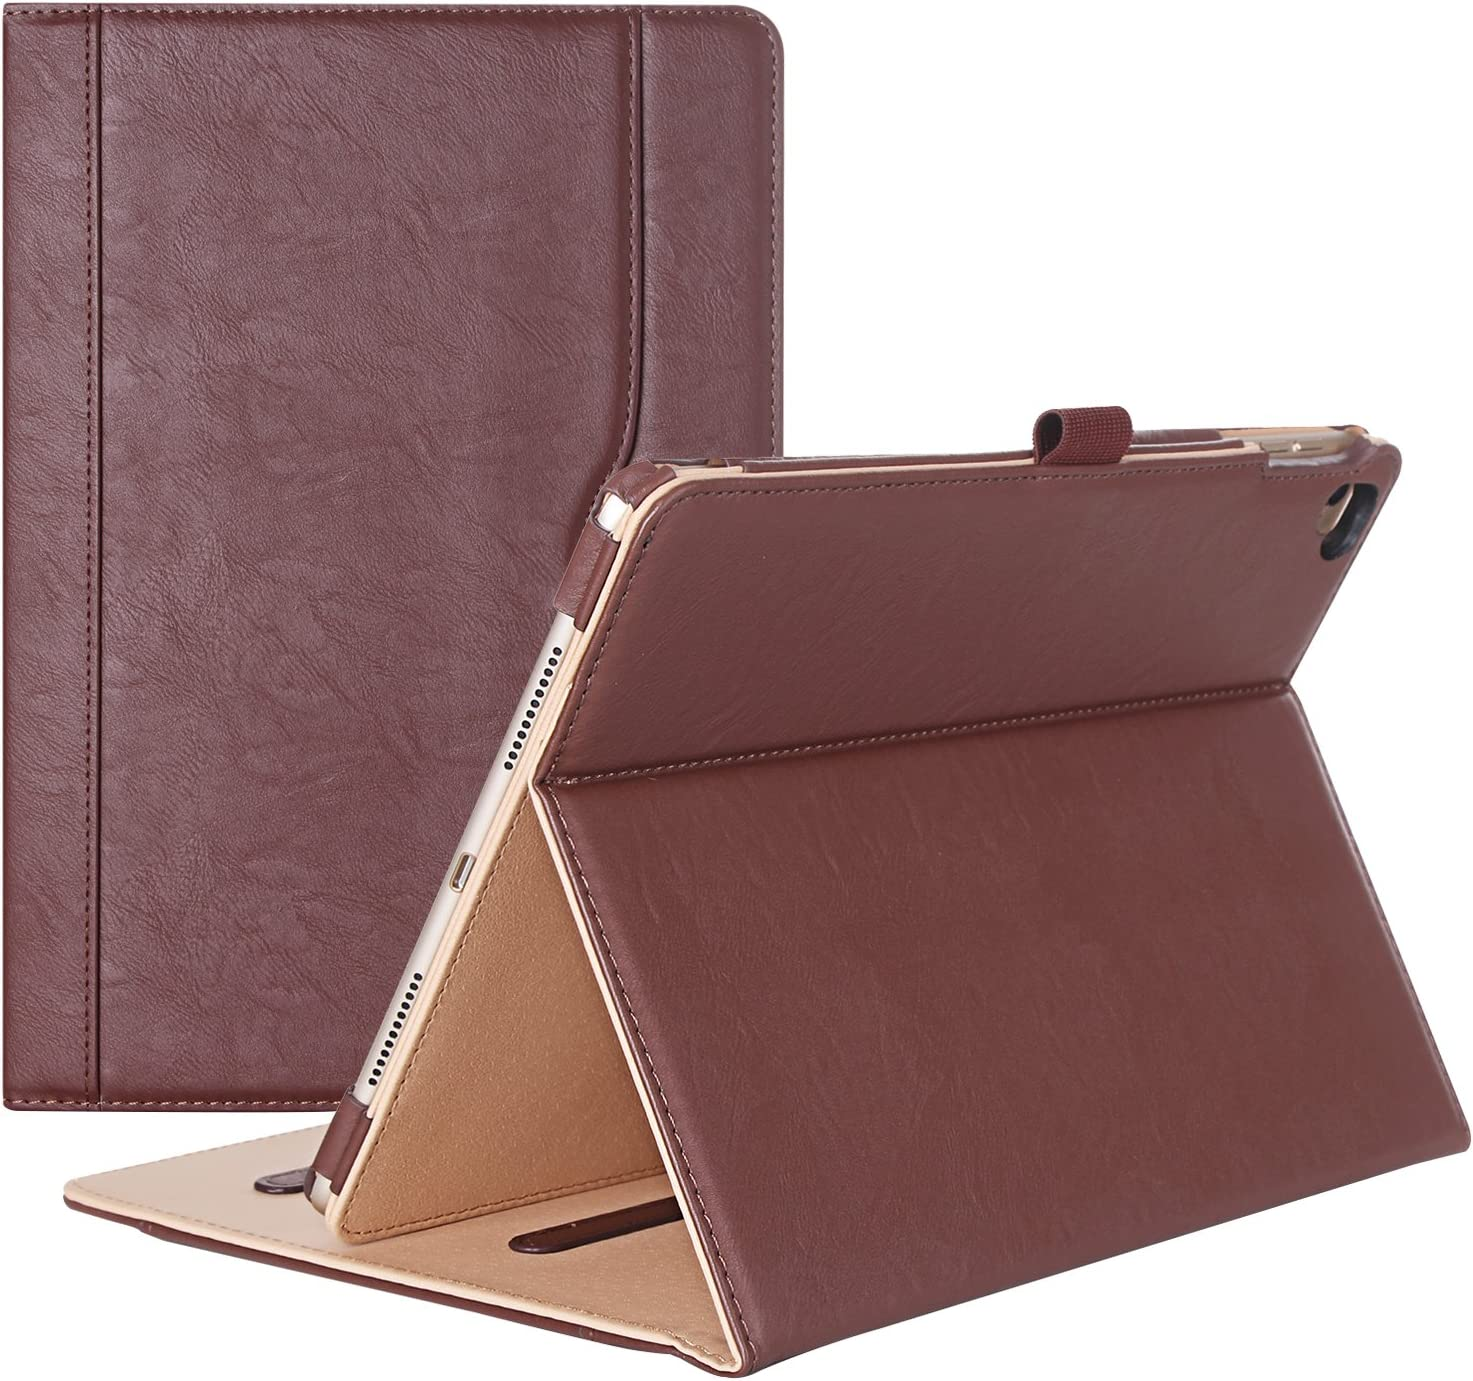 iPad Pro 9.7 Case - ProCase Stand Folio Case Cover for Apple iPad Pro 9.7 Inch 2016, with Multiple Viewing Angles, Document Card Pocket -Brown